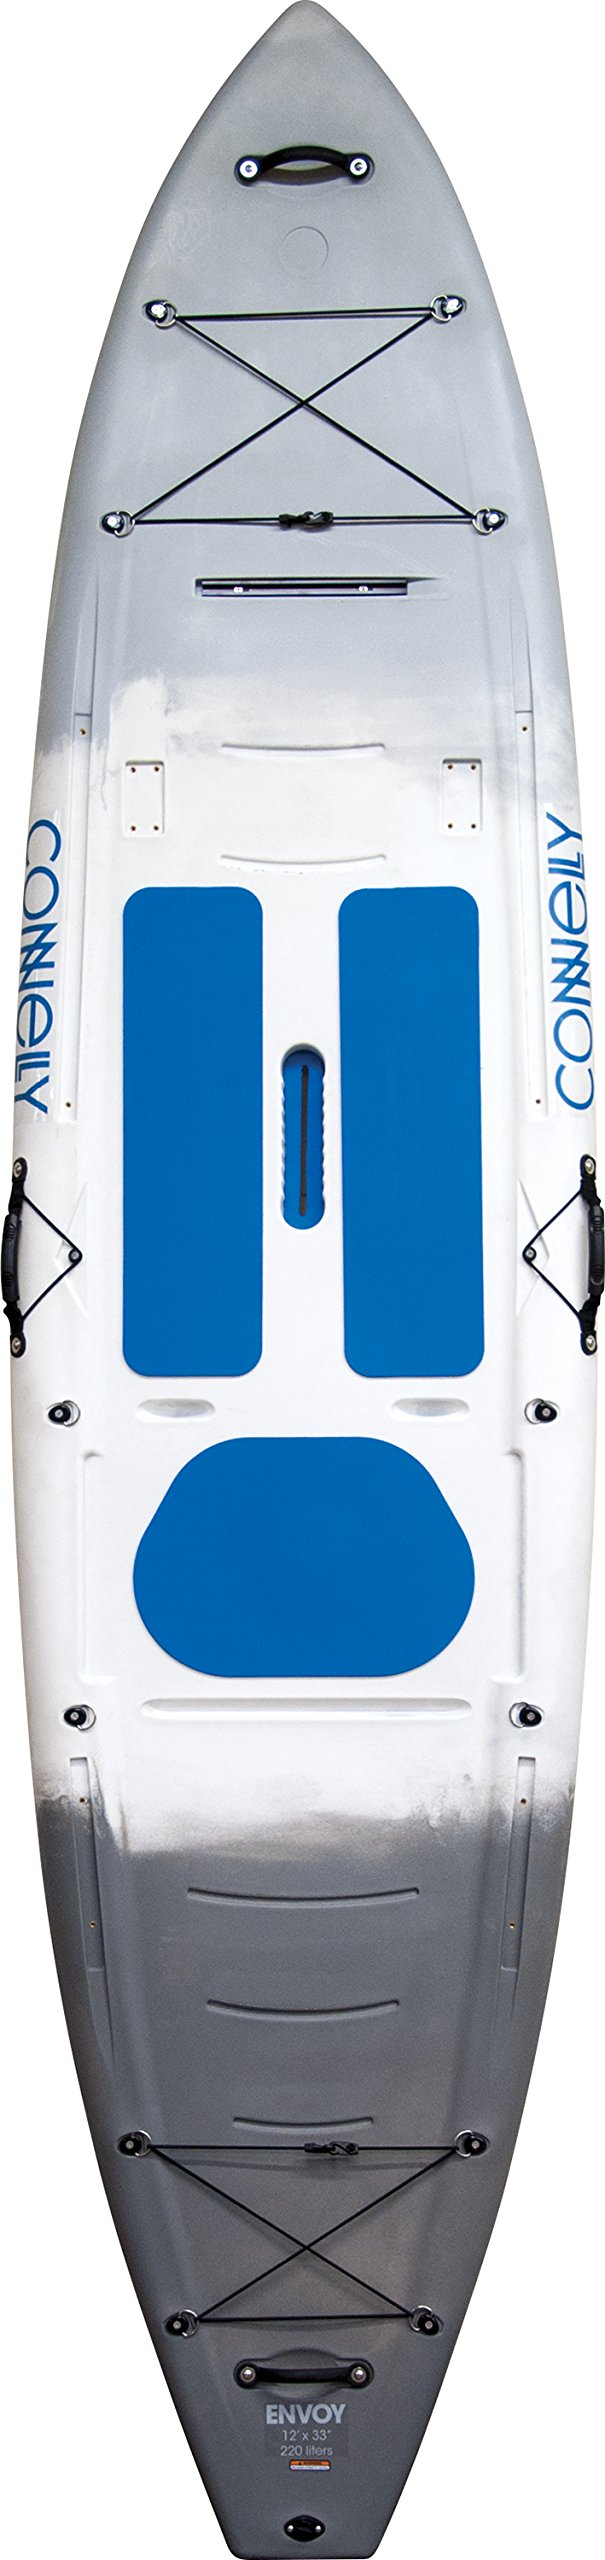 Connelly Envoy Stand Up 2017 220L Volume Paddleboard, 12' x 33'' by CWB